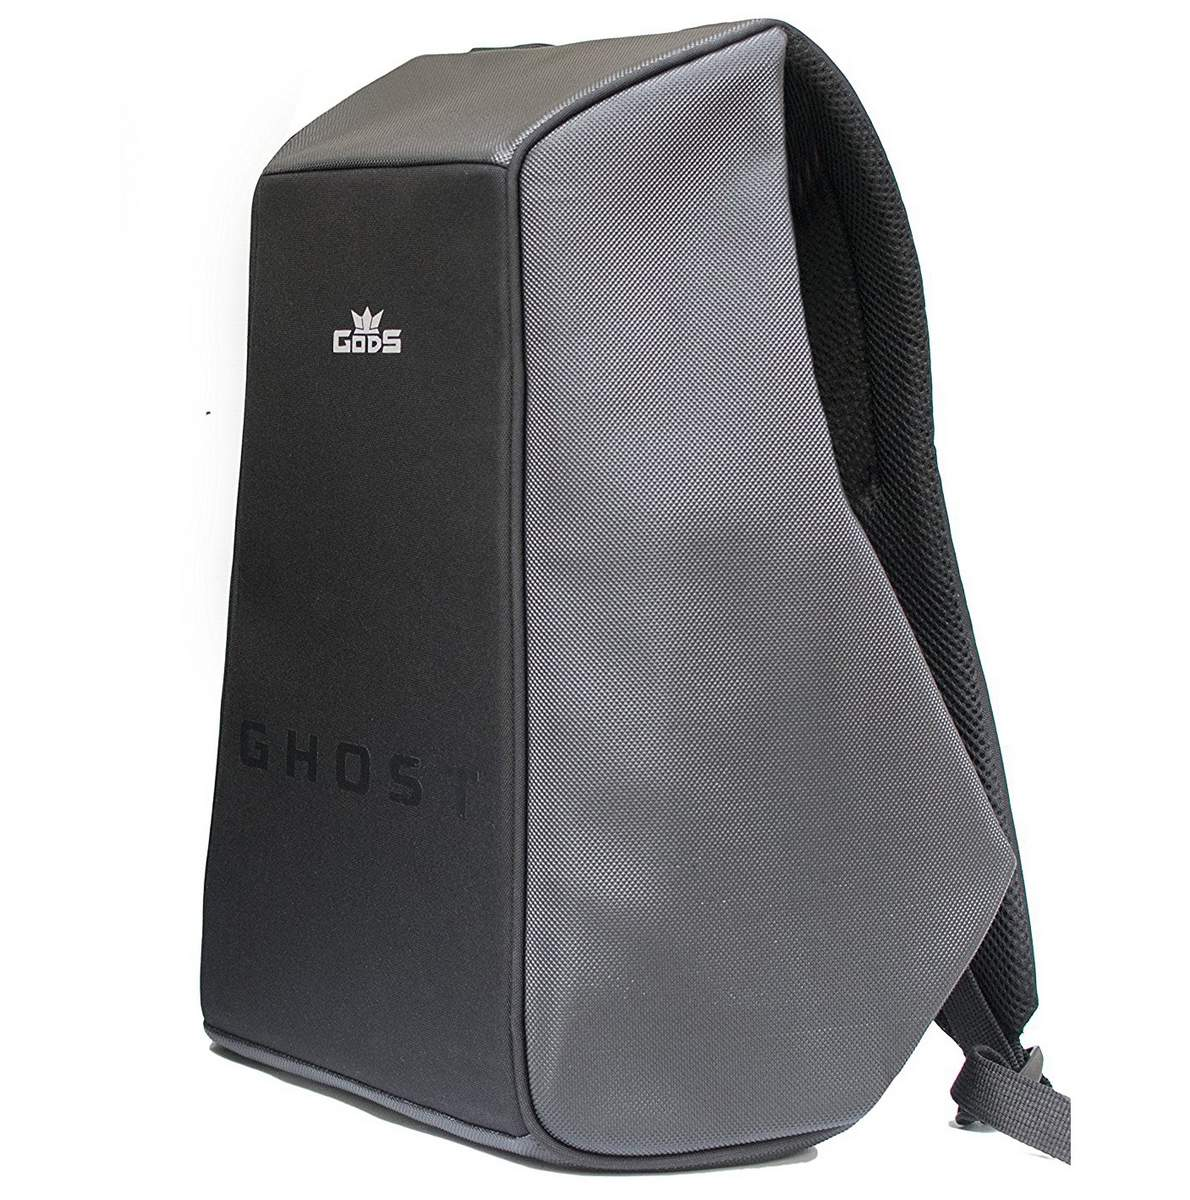 Road Gods The Ghost Minimalist Anti Theft Laptop Backpack